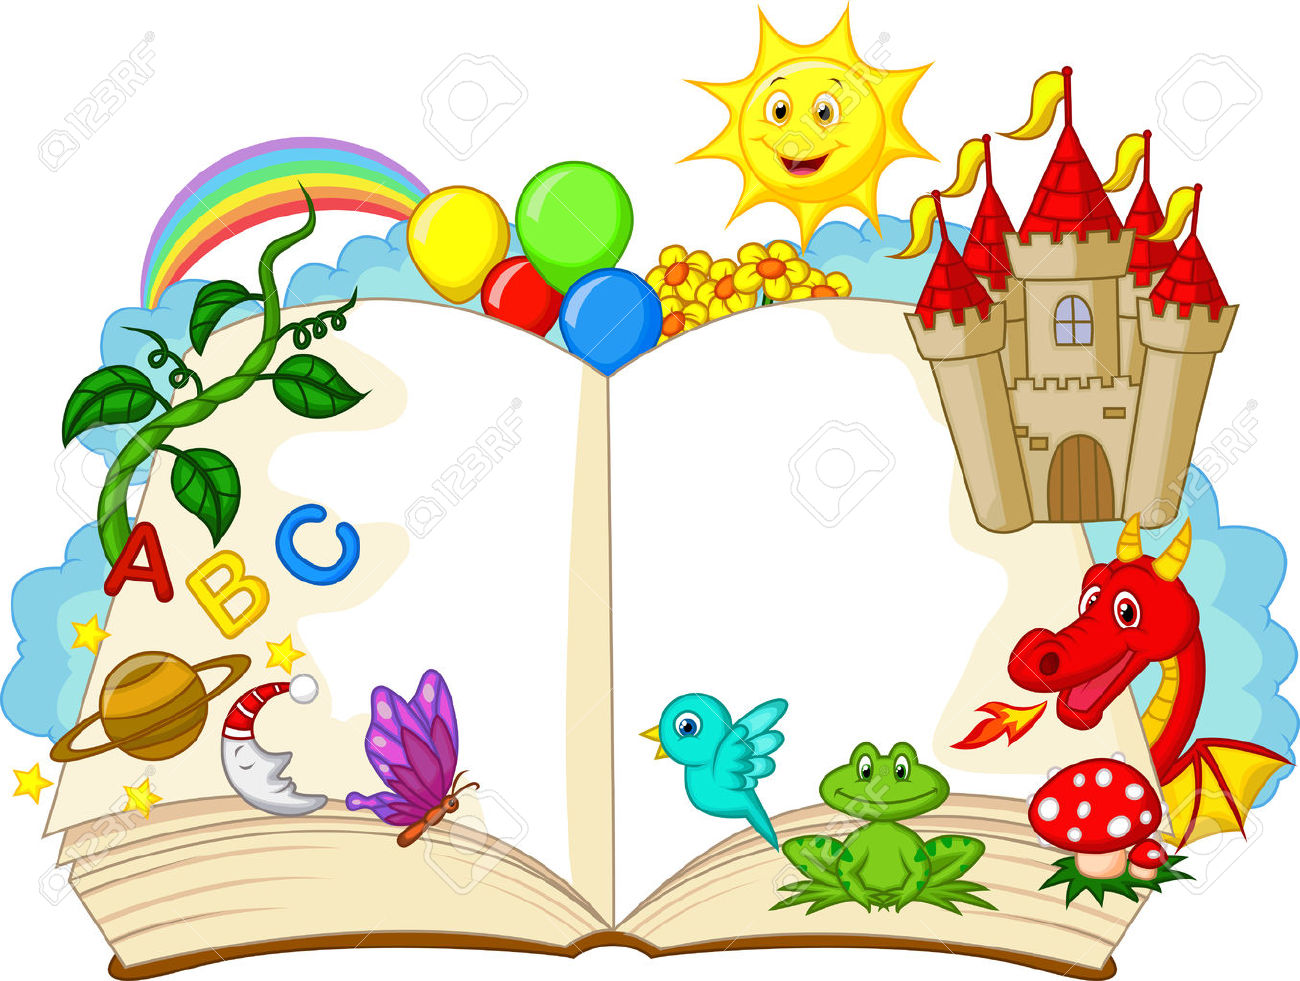 Story book clipart